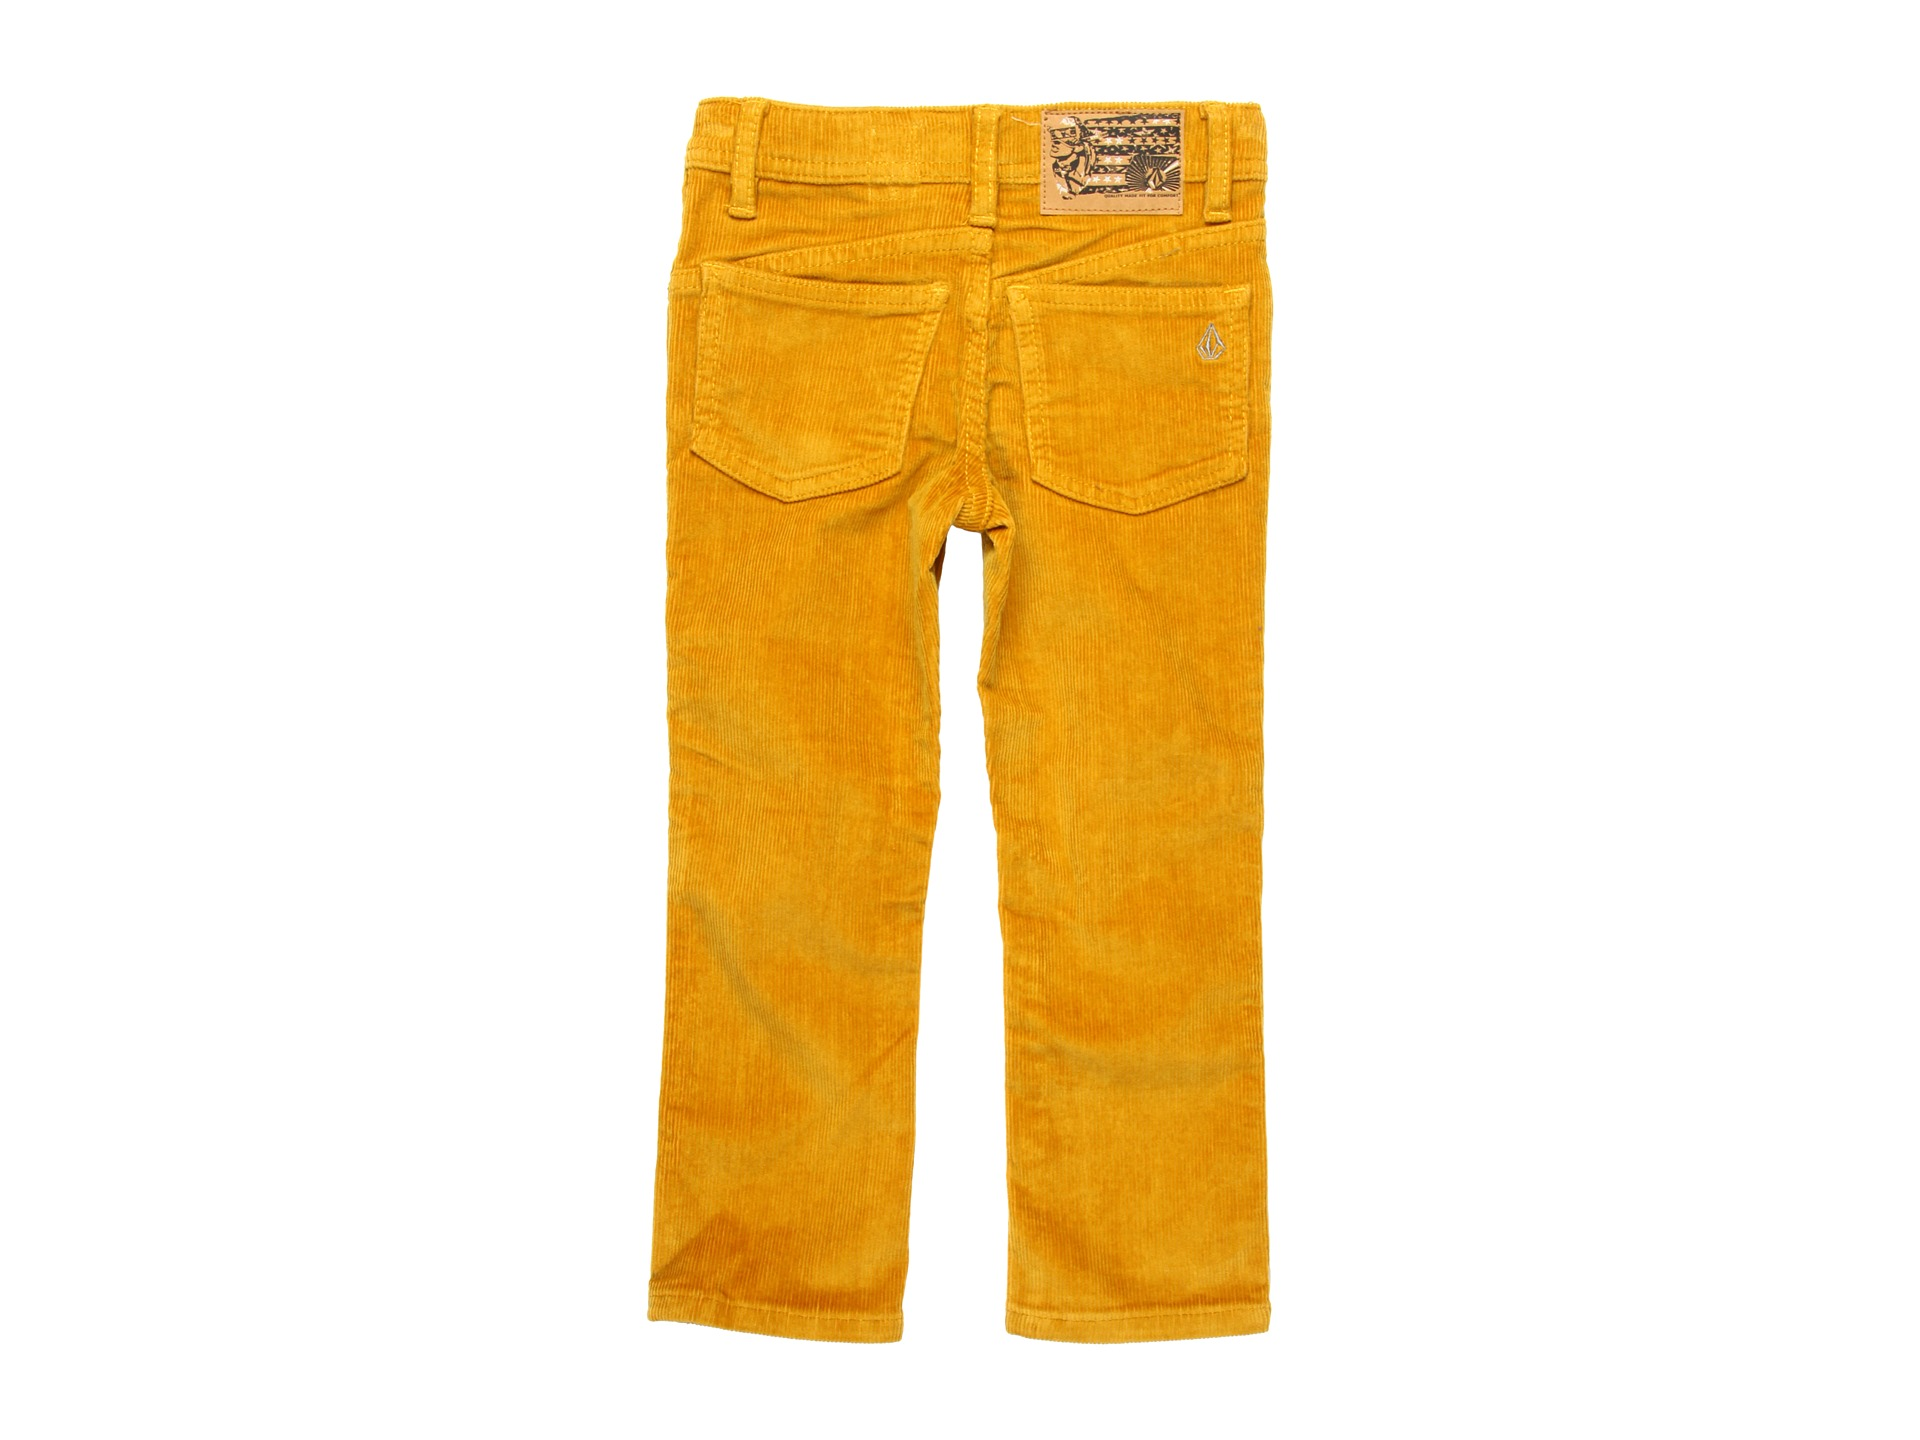 Box Wire Pant (Toddler/Little Kids) $14.99 (  MSRP $42.00